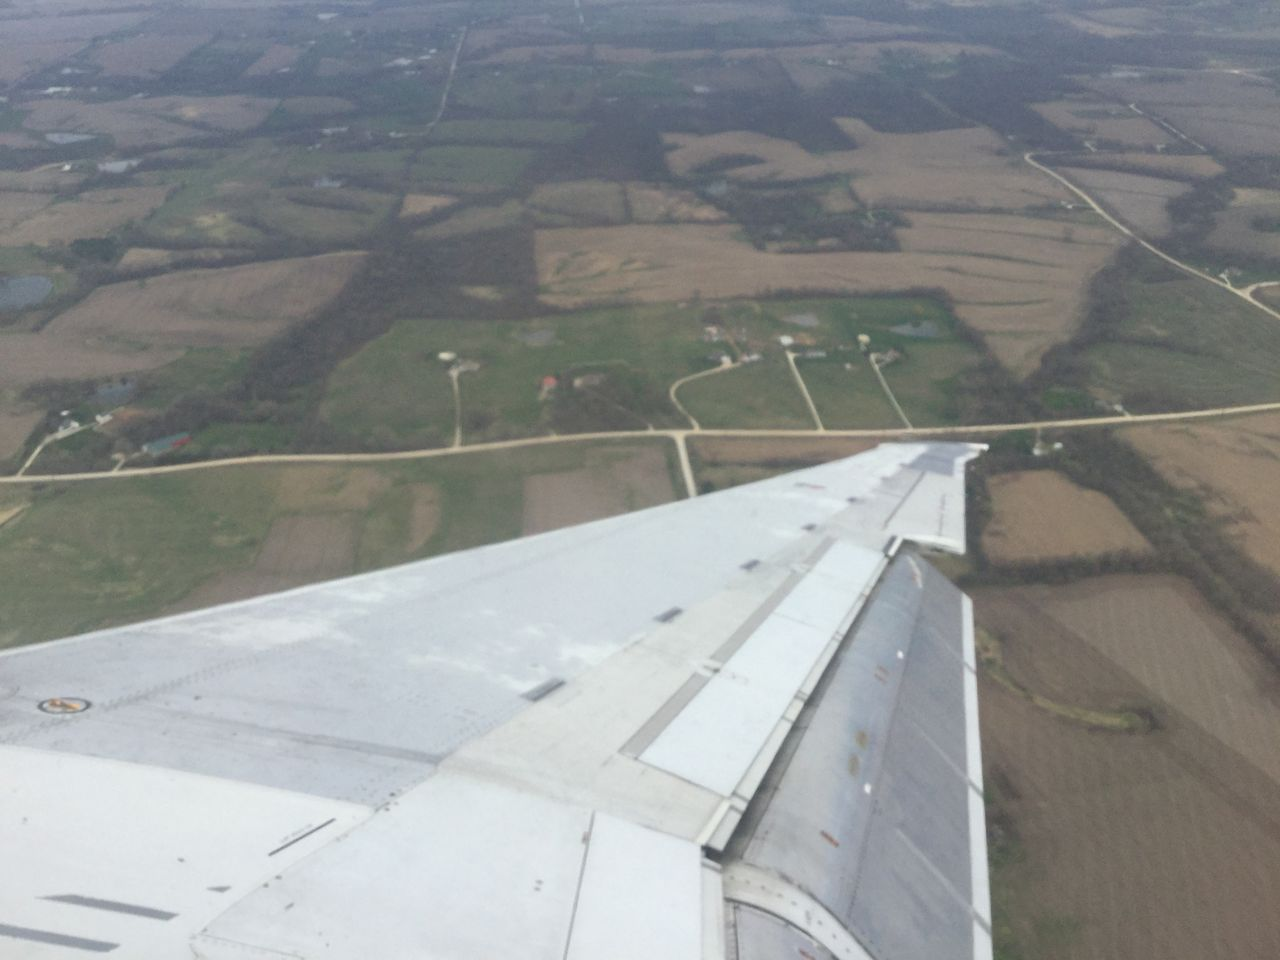 Review Of Delta Air Lines Flight From Atlanta To Des Moines In Economy - My flight to des moines